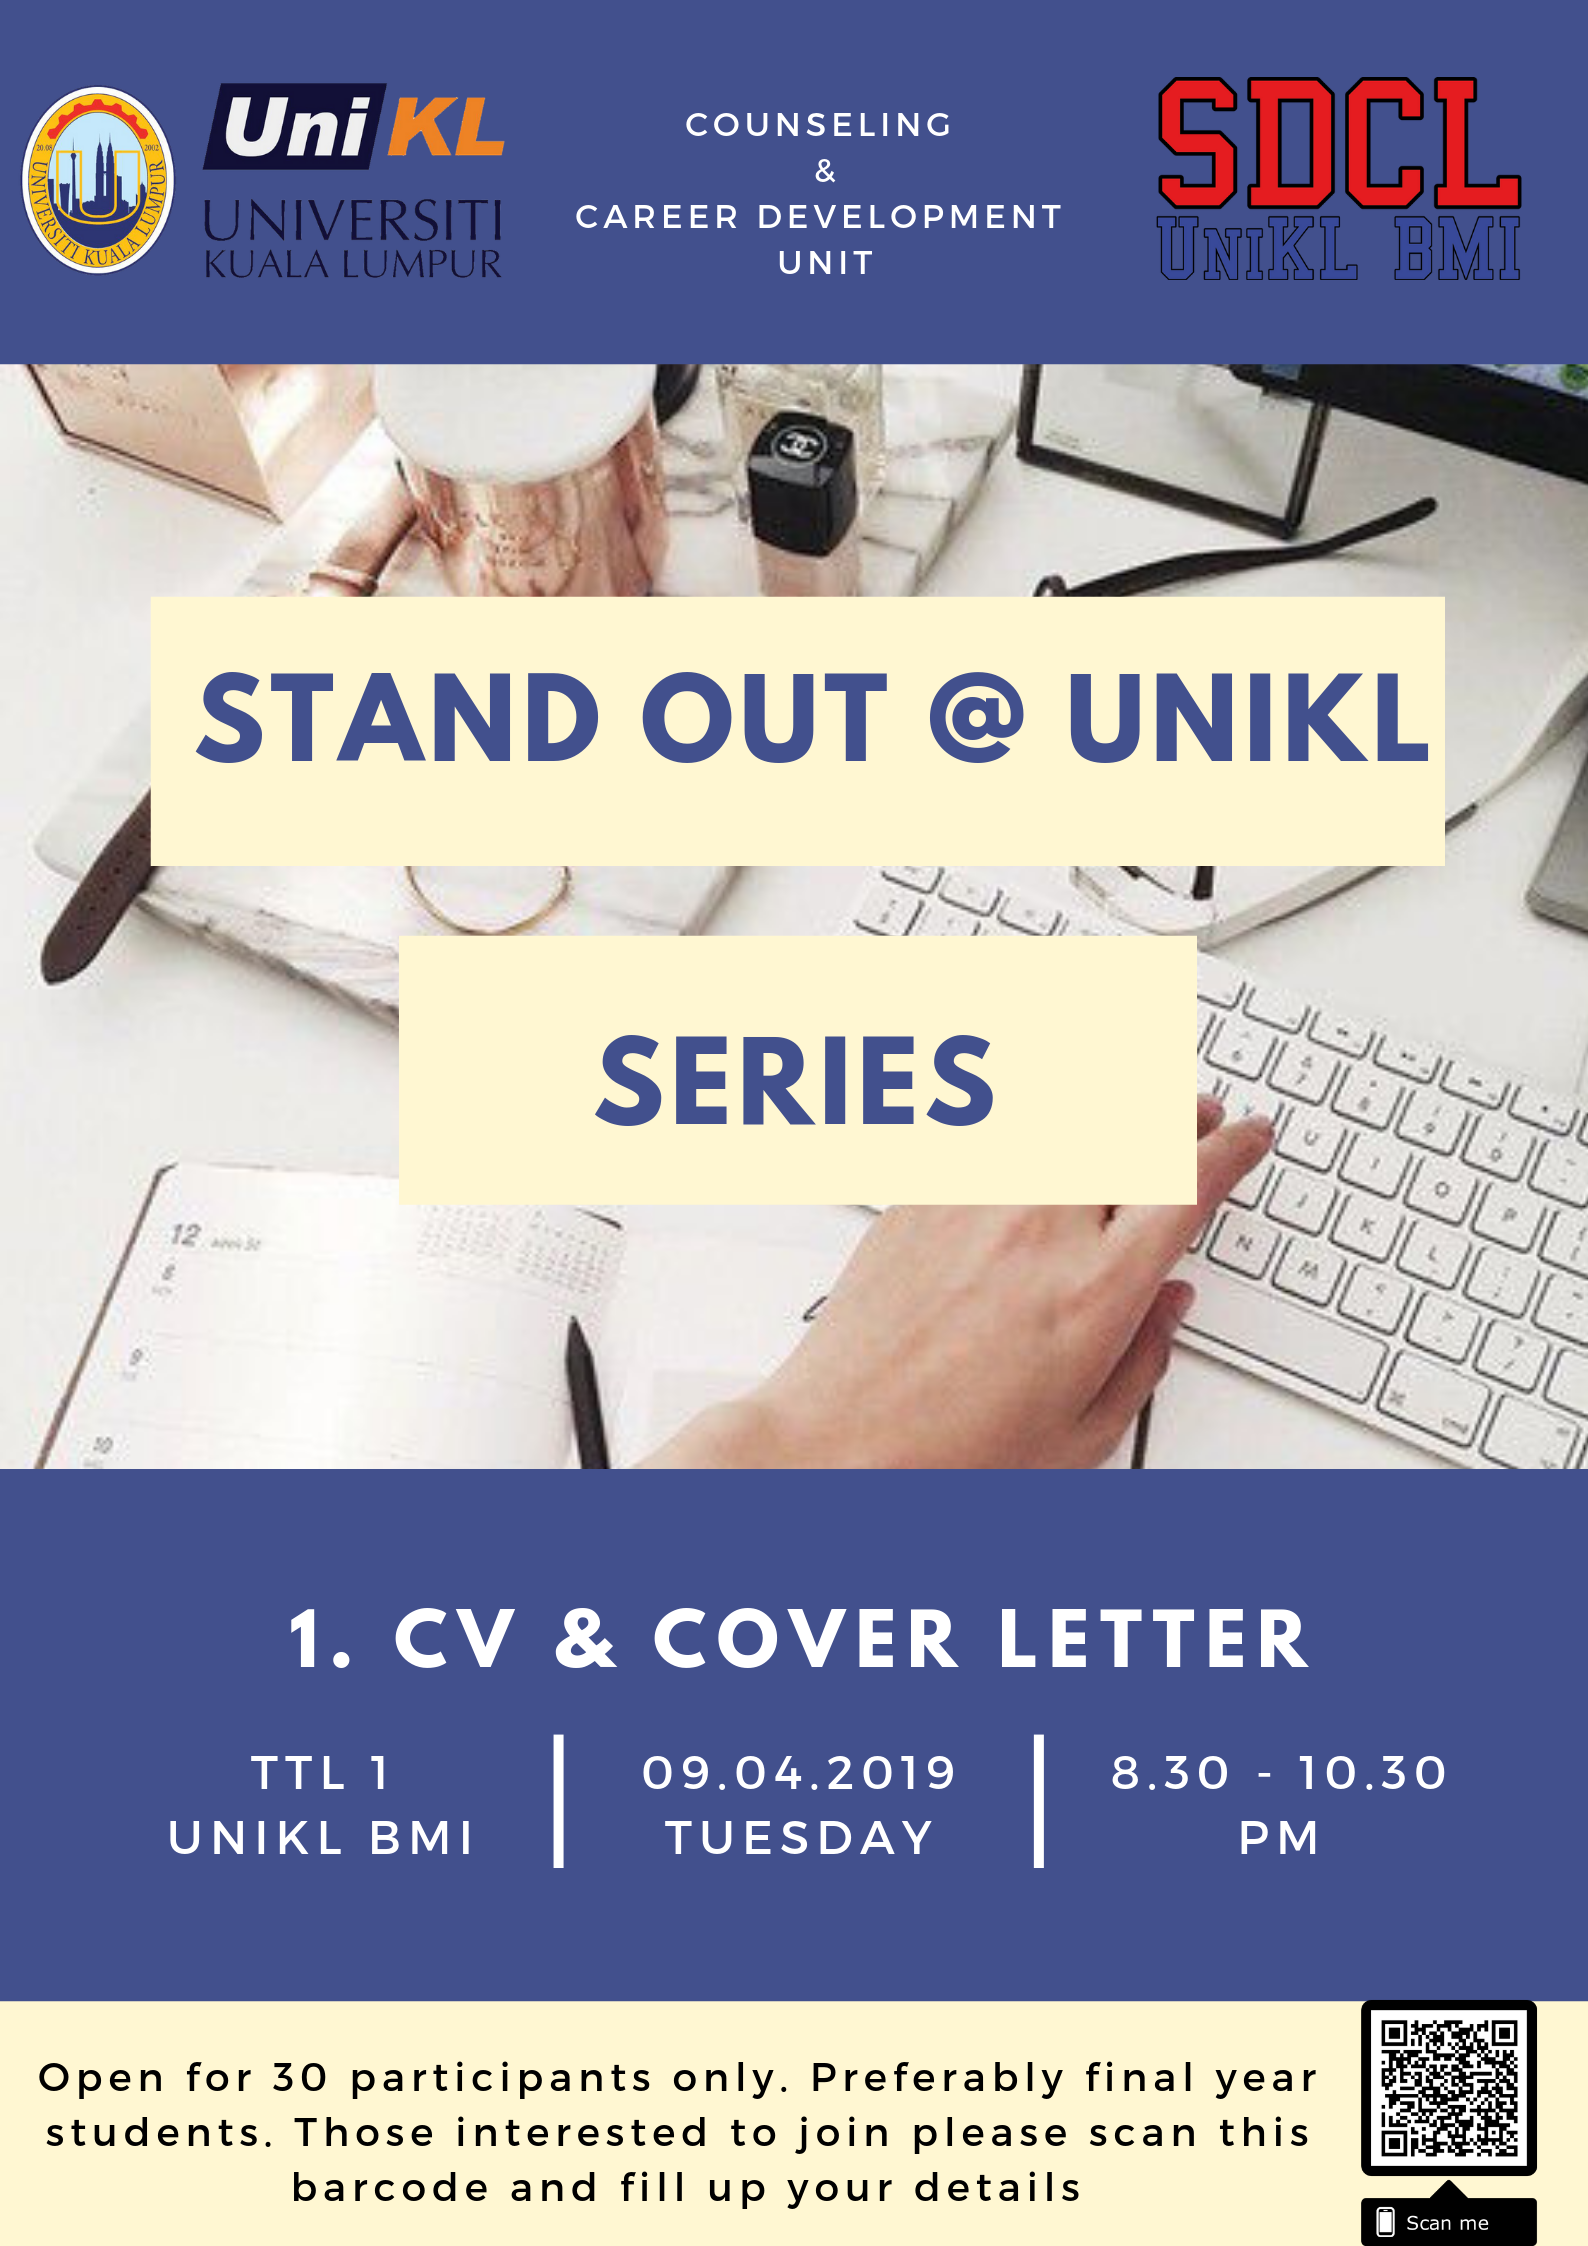 STAND OUT @ UniKL SERIES: 1. CVs & COVER LETTER